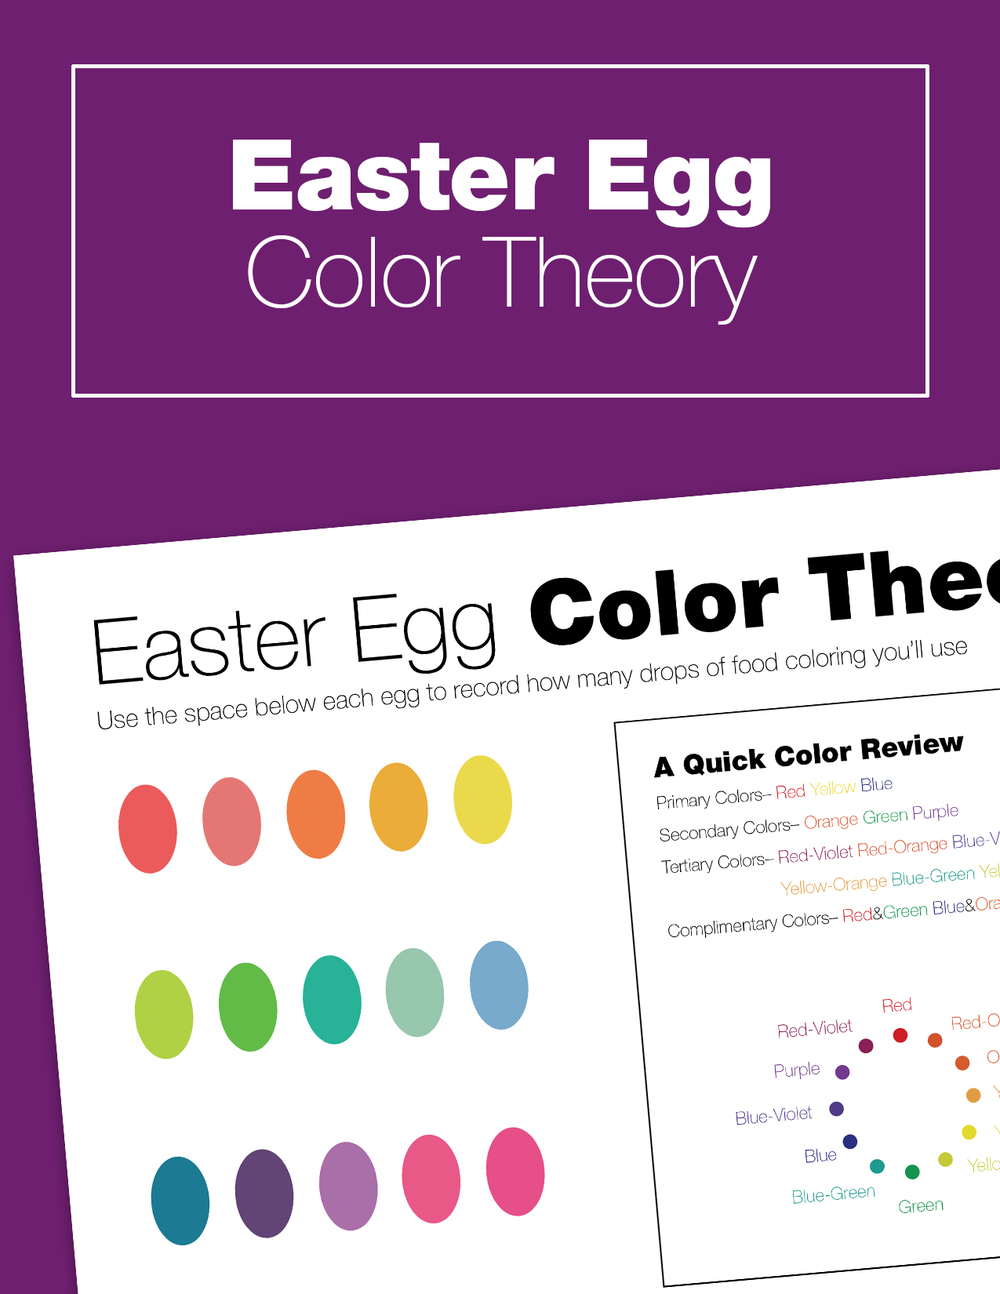 Easter Egg coloring just got educational! Become scientists and artists as you explore how many drops of food coloring it takes to mix different colors. A great intro to art history project to do with your kids in the spring!